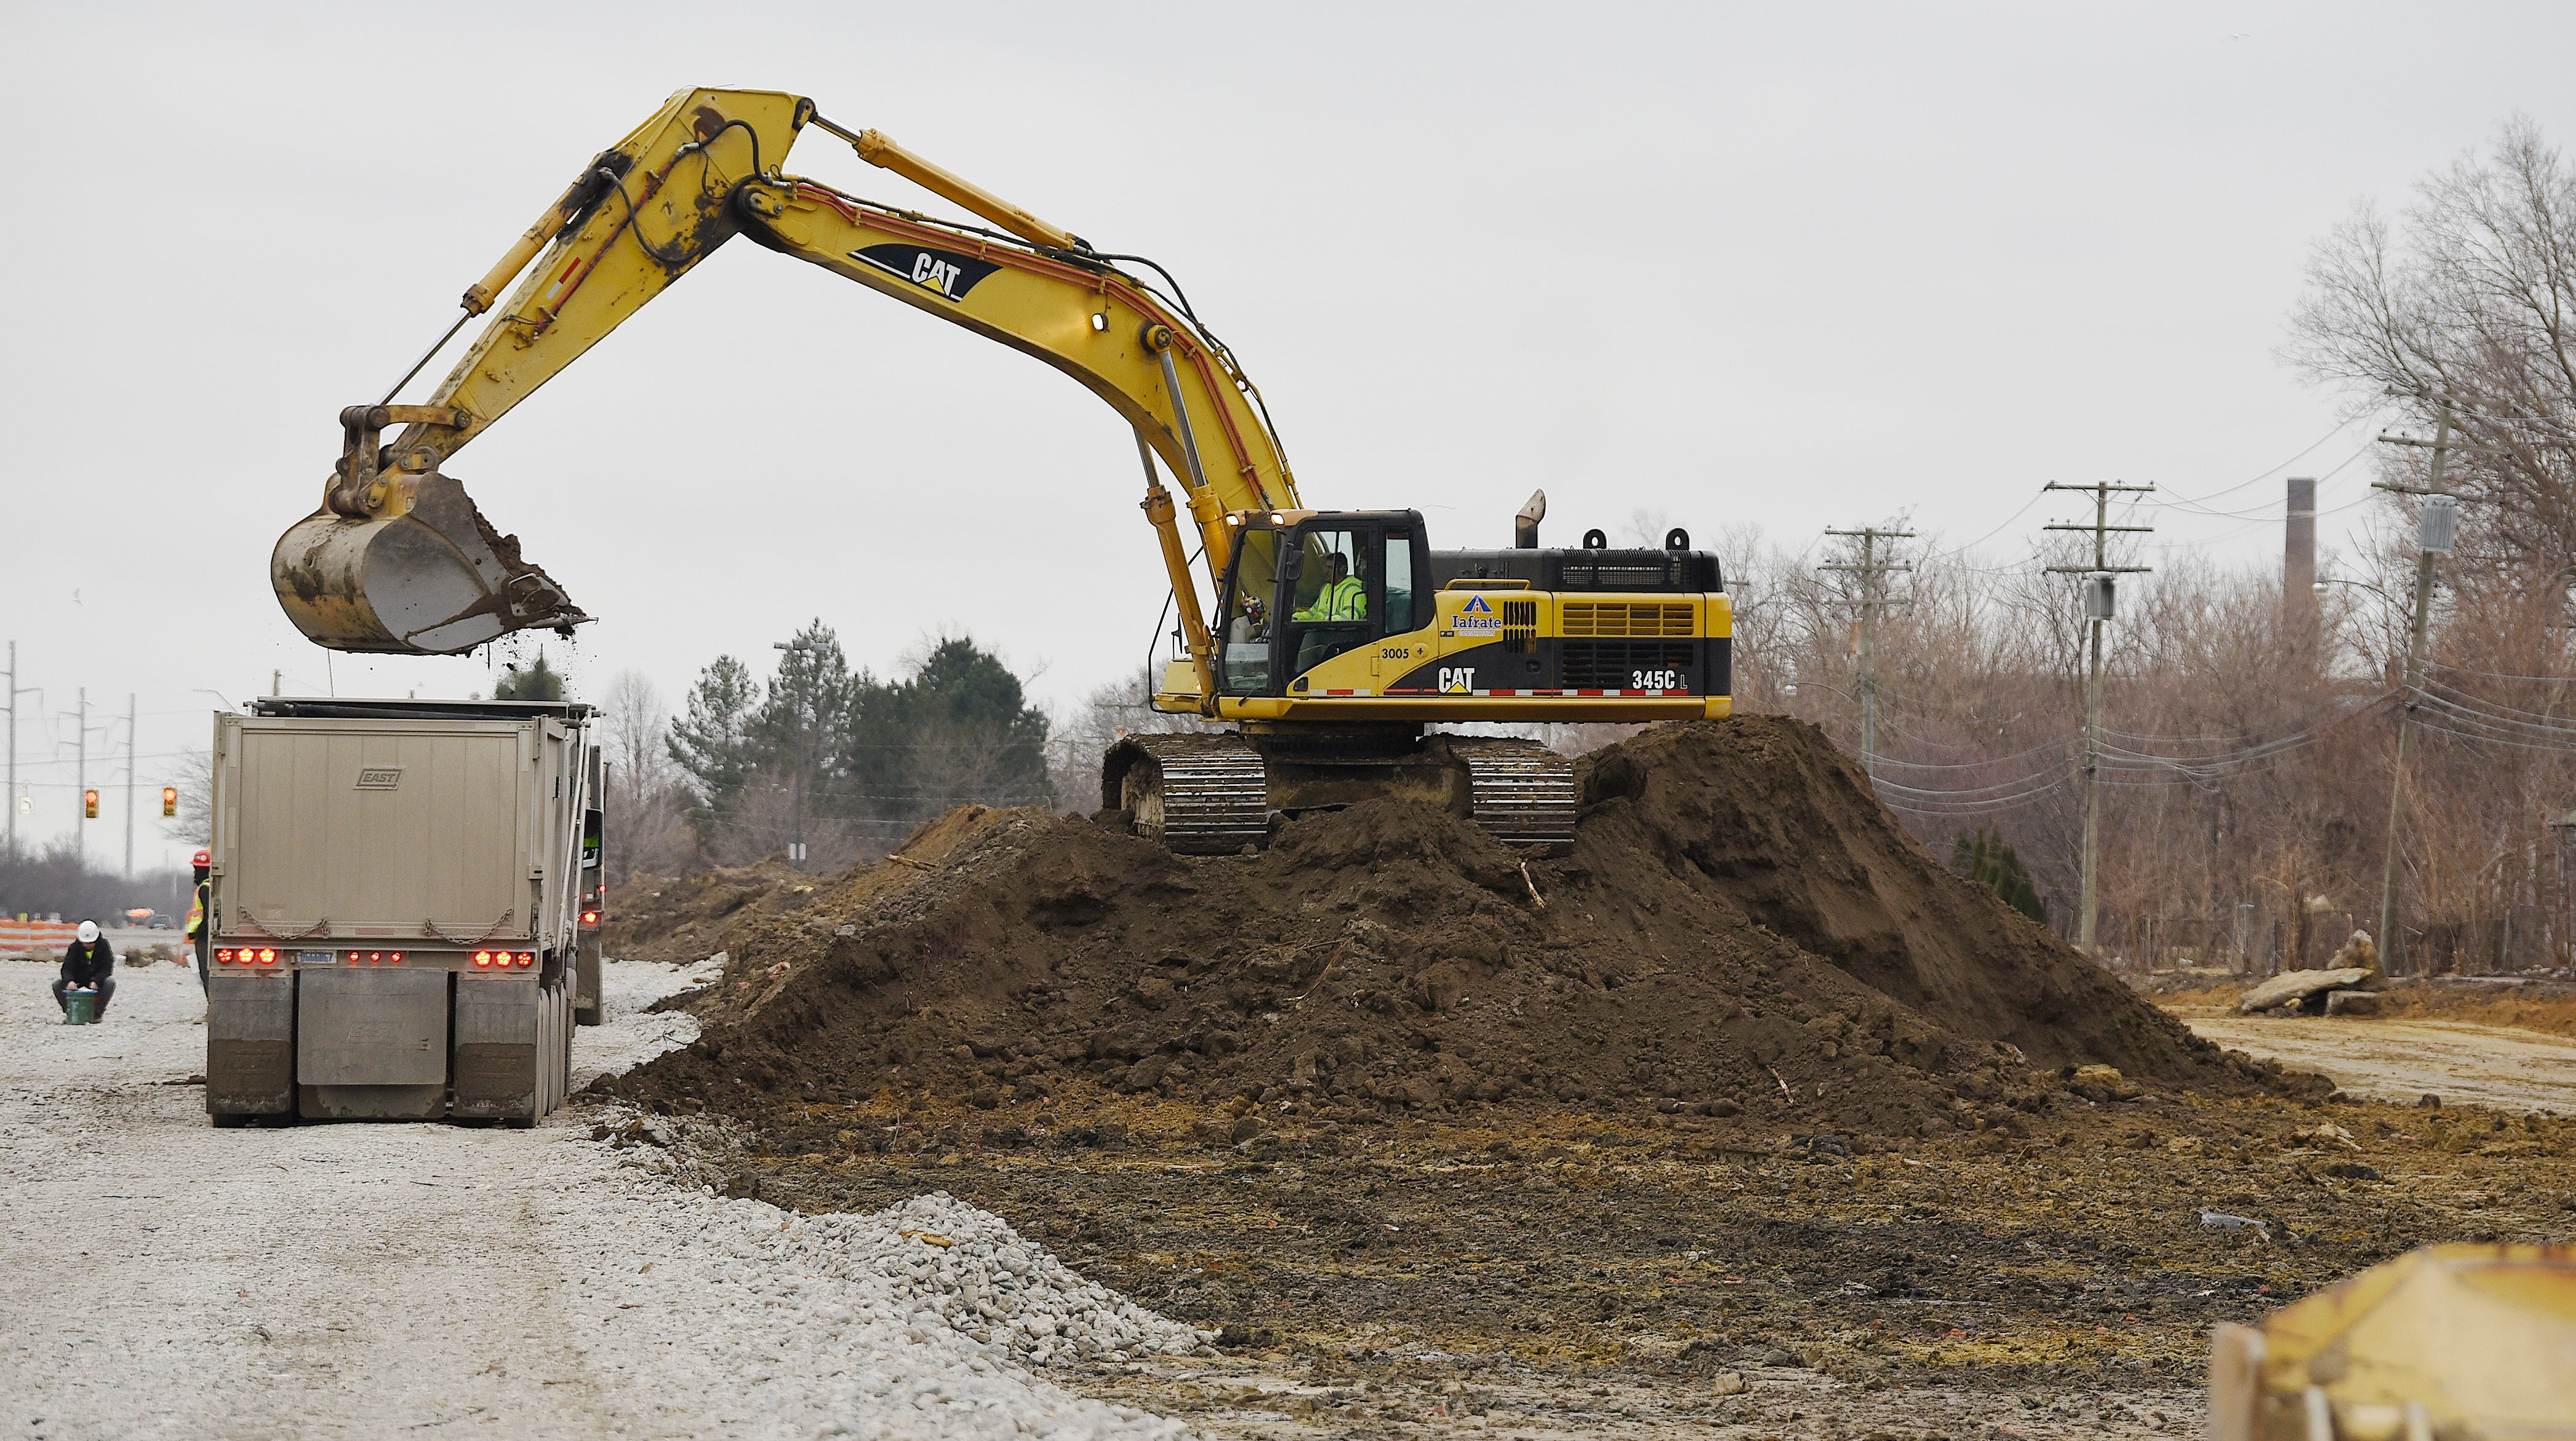 A operator from Iafrate Construction Co. uses an excavator to remove soil from land on St. Jean near E. Canfield in Detroit, Friday, March 15. The land is part of the 200 acres that the city needs to acquire for the proposed Fiat Chrysler Mack Avenue Assembly complex.